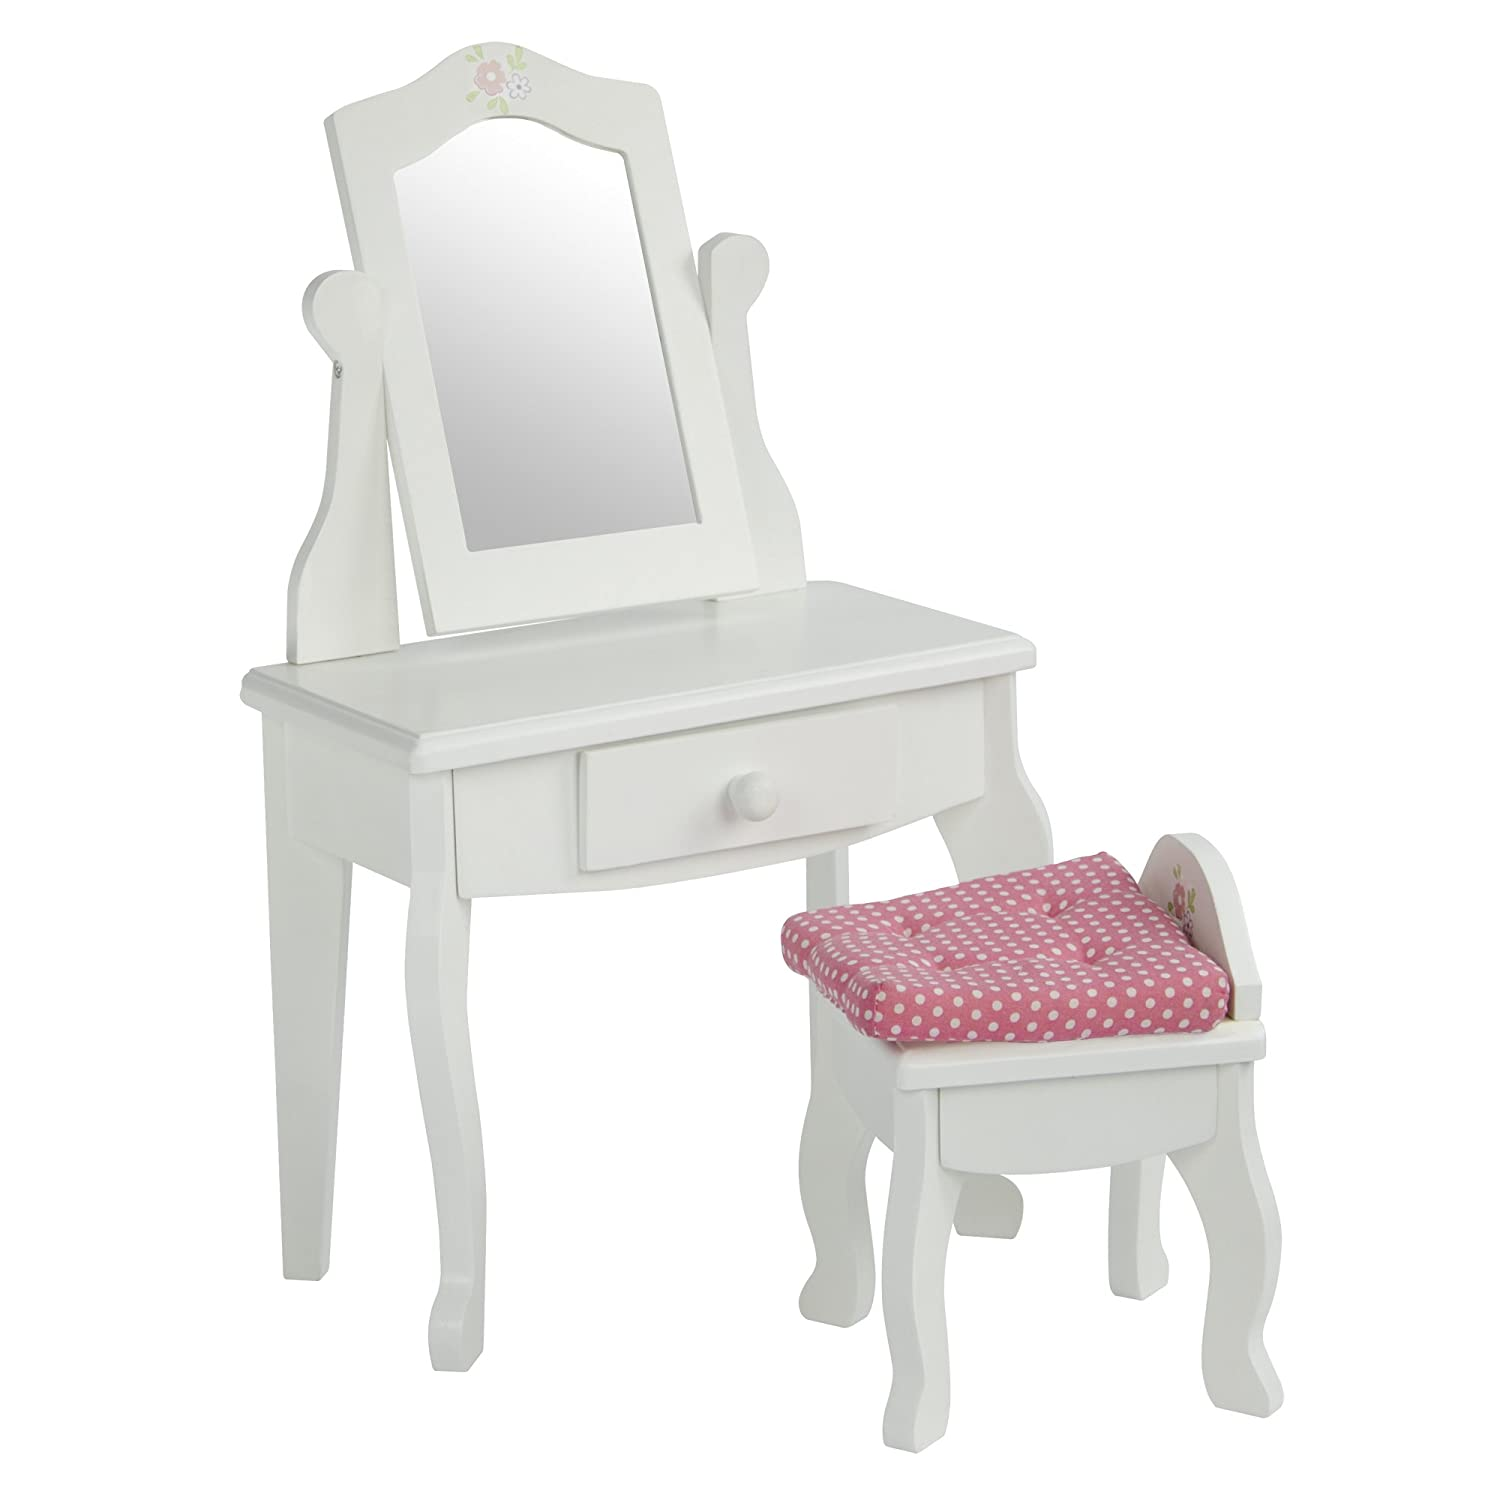 Amazon Olivia s Little World Princess Vanity Table and Chair